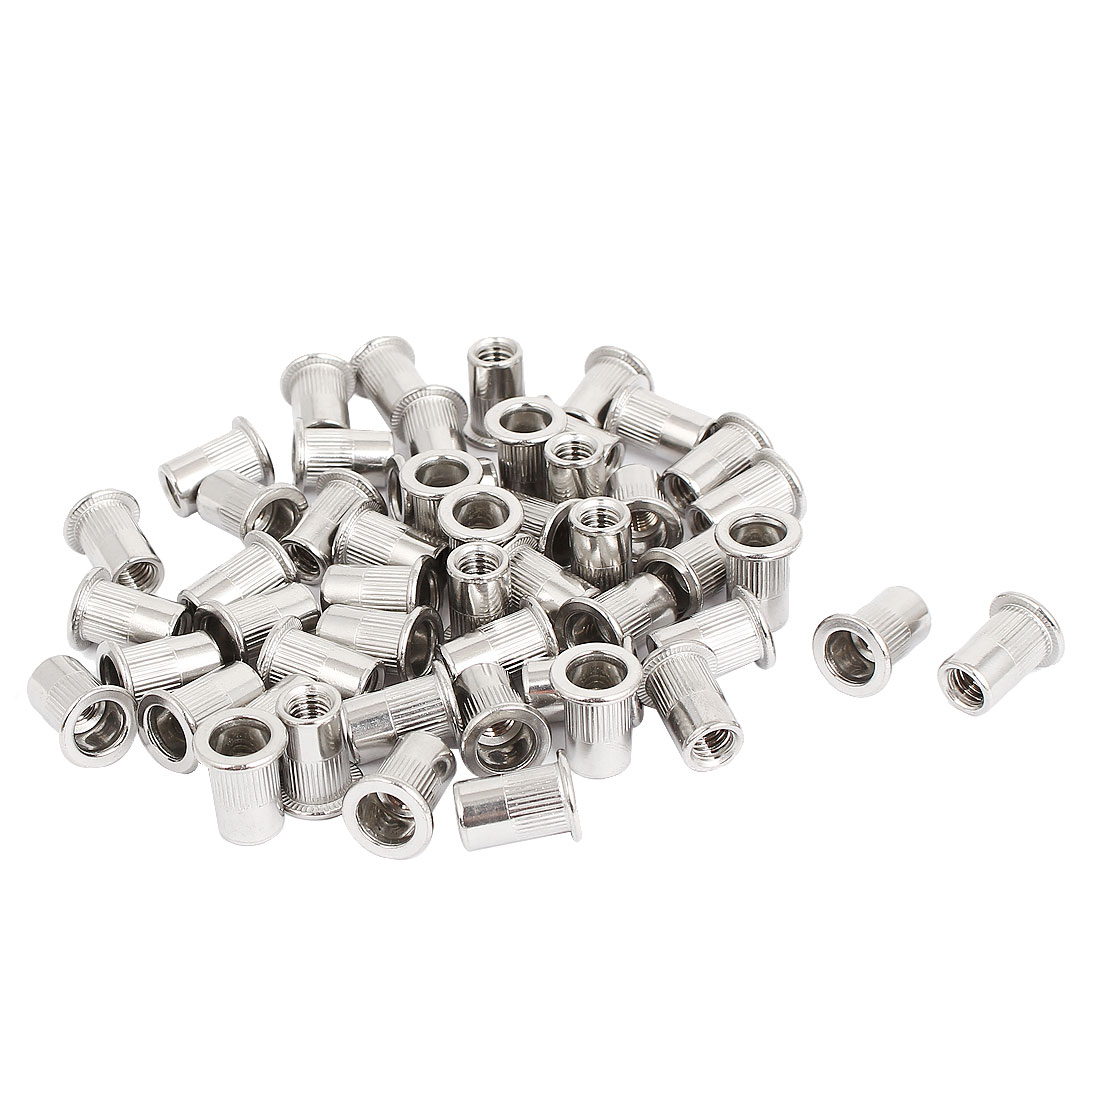 M6 Thread 304 Stainless Steel Rivet Nut Insert Nutsert 50pcs